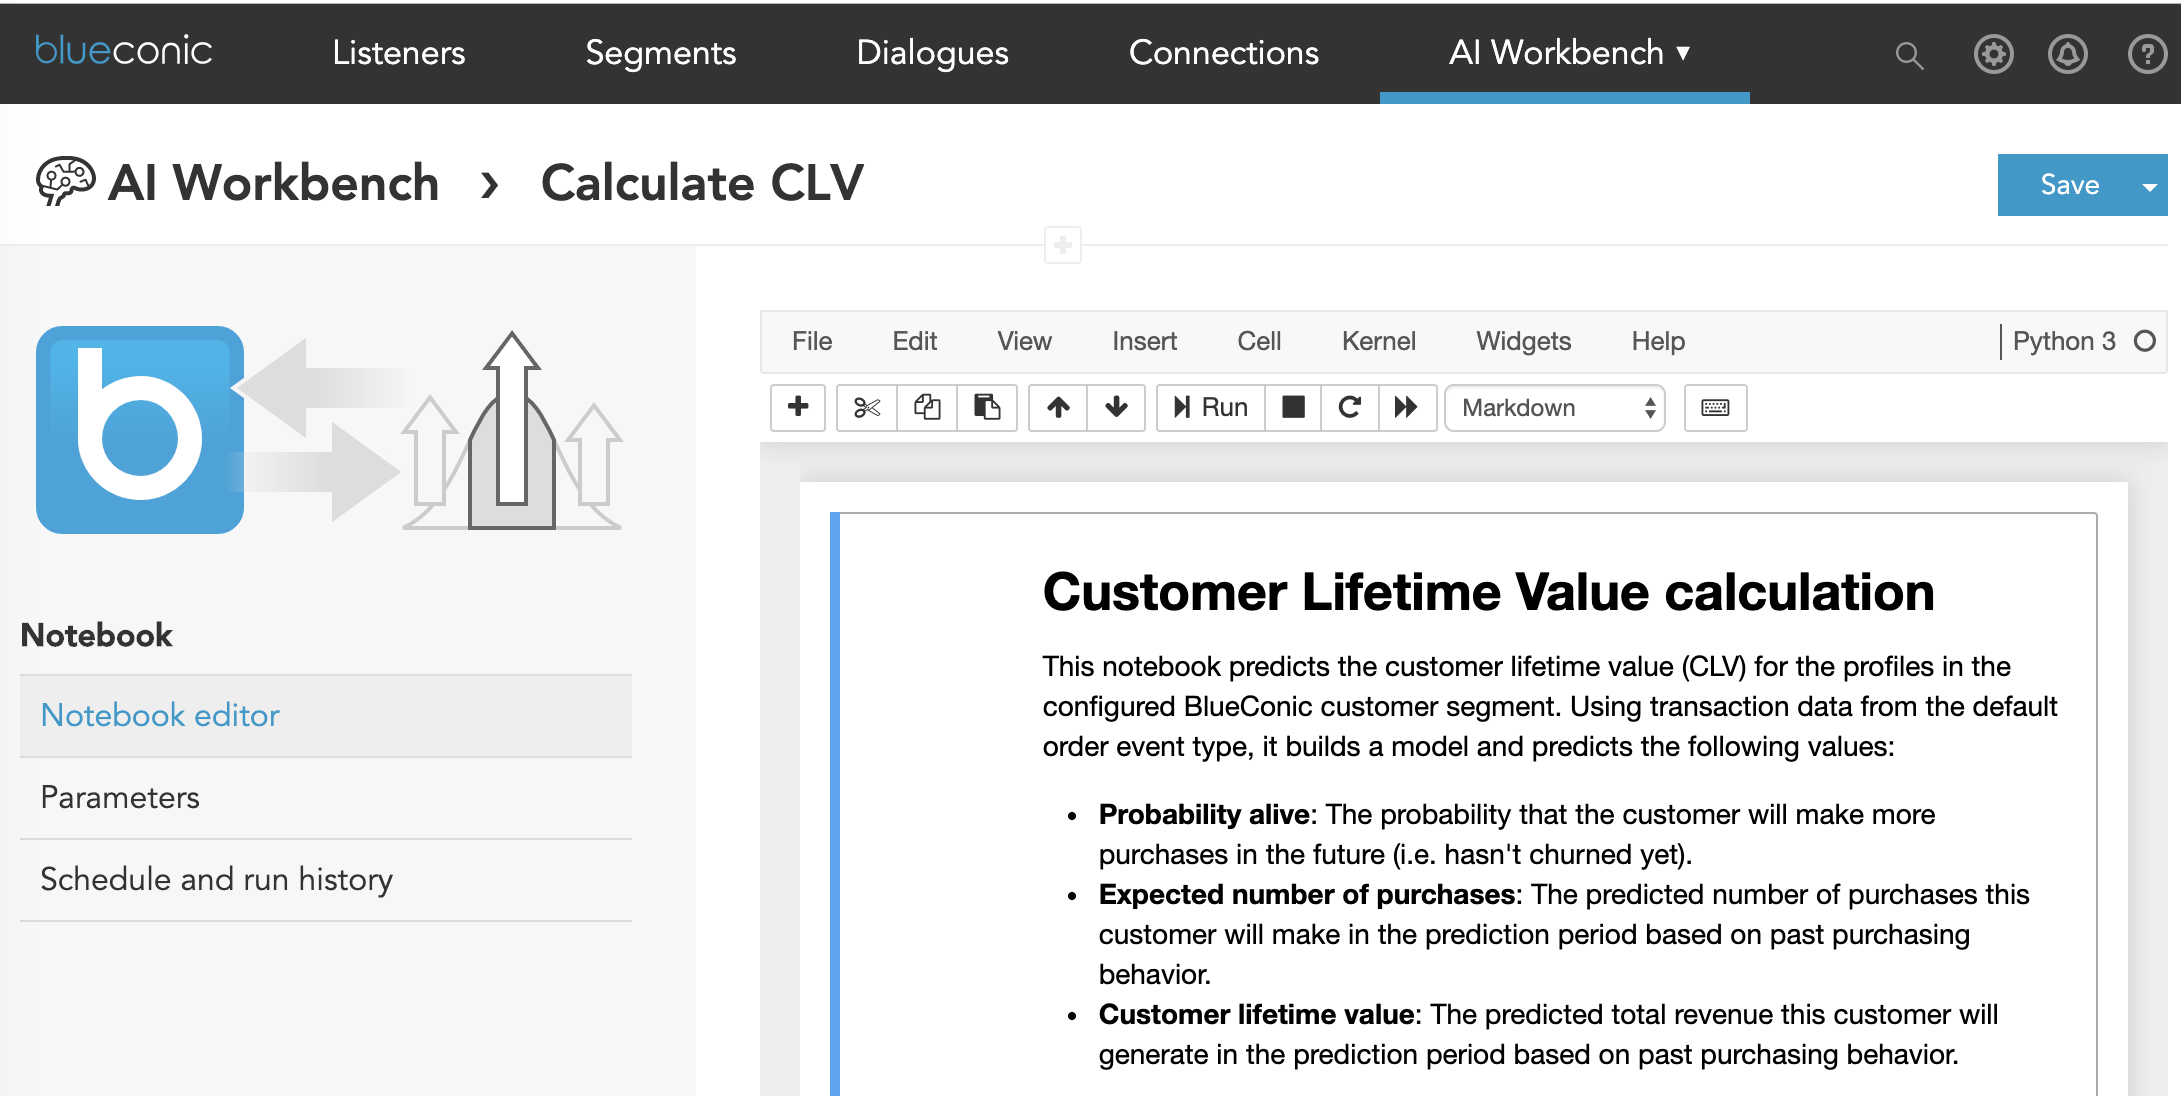 What is marketing predictive analytics? How can I use the BlueConic CDP to predict CLV and RFM scores based on AI marketing and machine learning with customer segments and profile data?